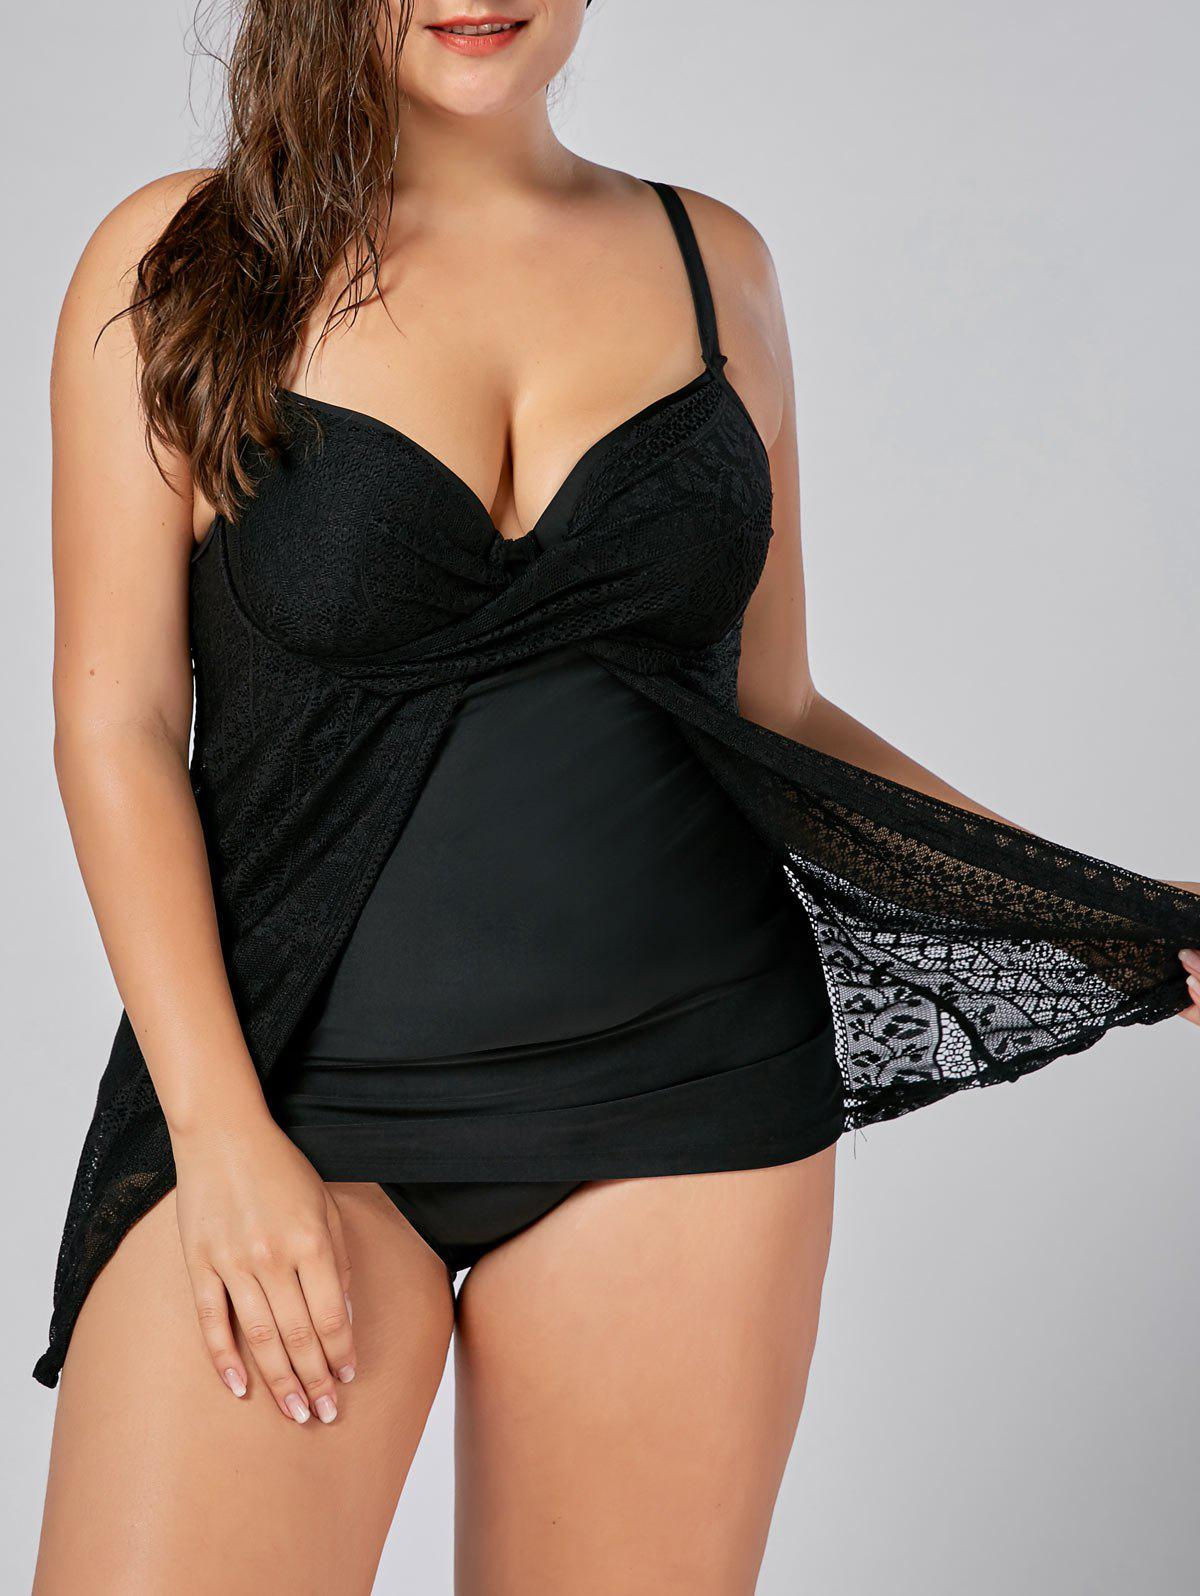 Push Up Underwire Plus Size Lace TankiniWOMEN<br><br>Size: 5XL; Color: BLACK; Gender: For Women; Swimwear Type: Tankini; Material: Polyester,Spandex; Bra Style: Push Up; Support Type: Underwire; Neckline: Spaghetti Straps; Pattern Type: Solid; Waist: High Waisted; Weight: 0.3700kg; Package Contents: 1 x Tankini Top 1 x Briefs;